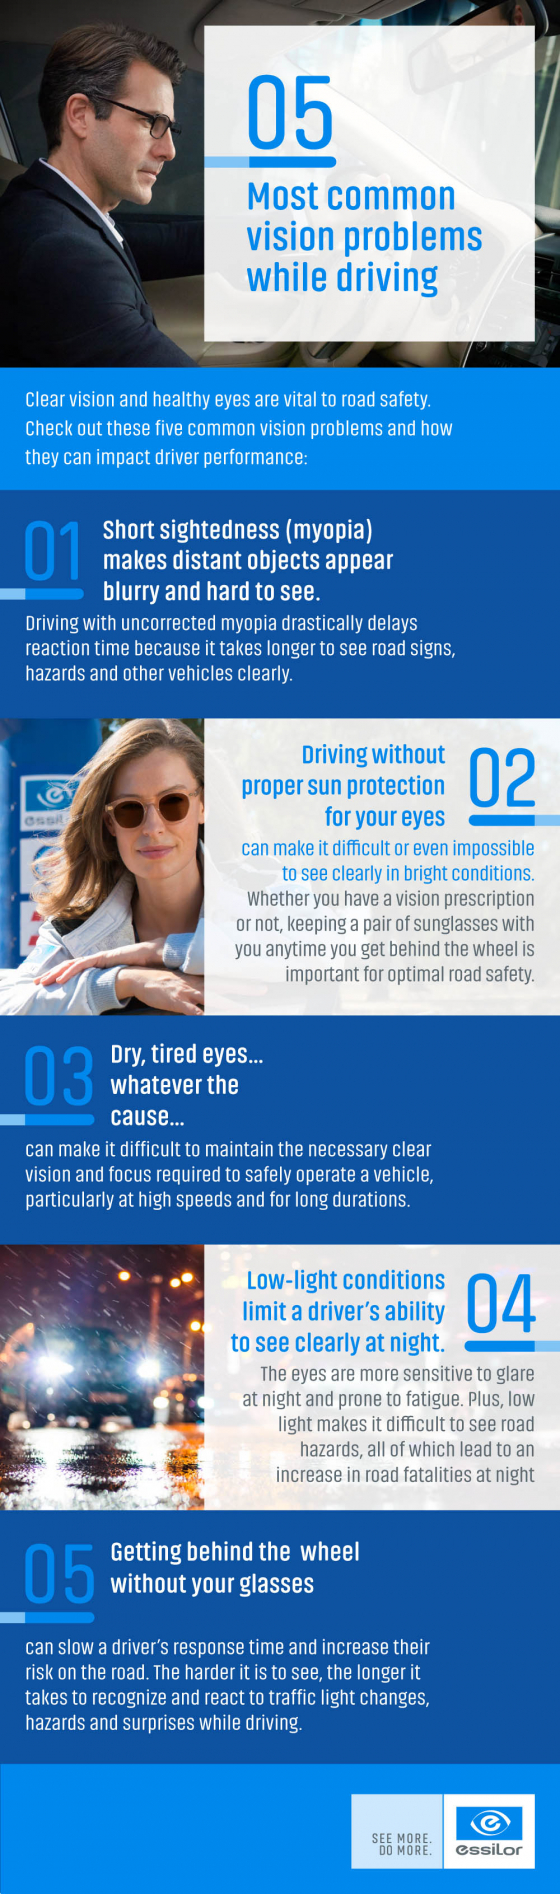 5 most common vision problems while driving infographic